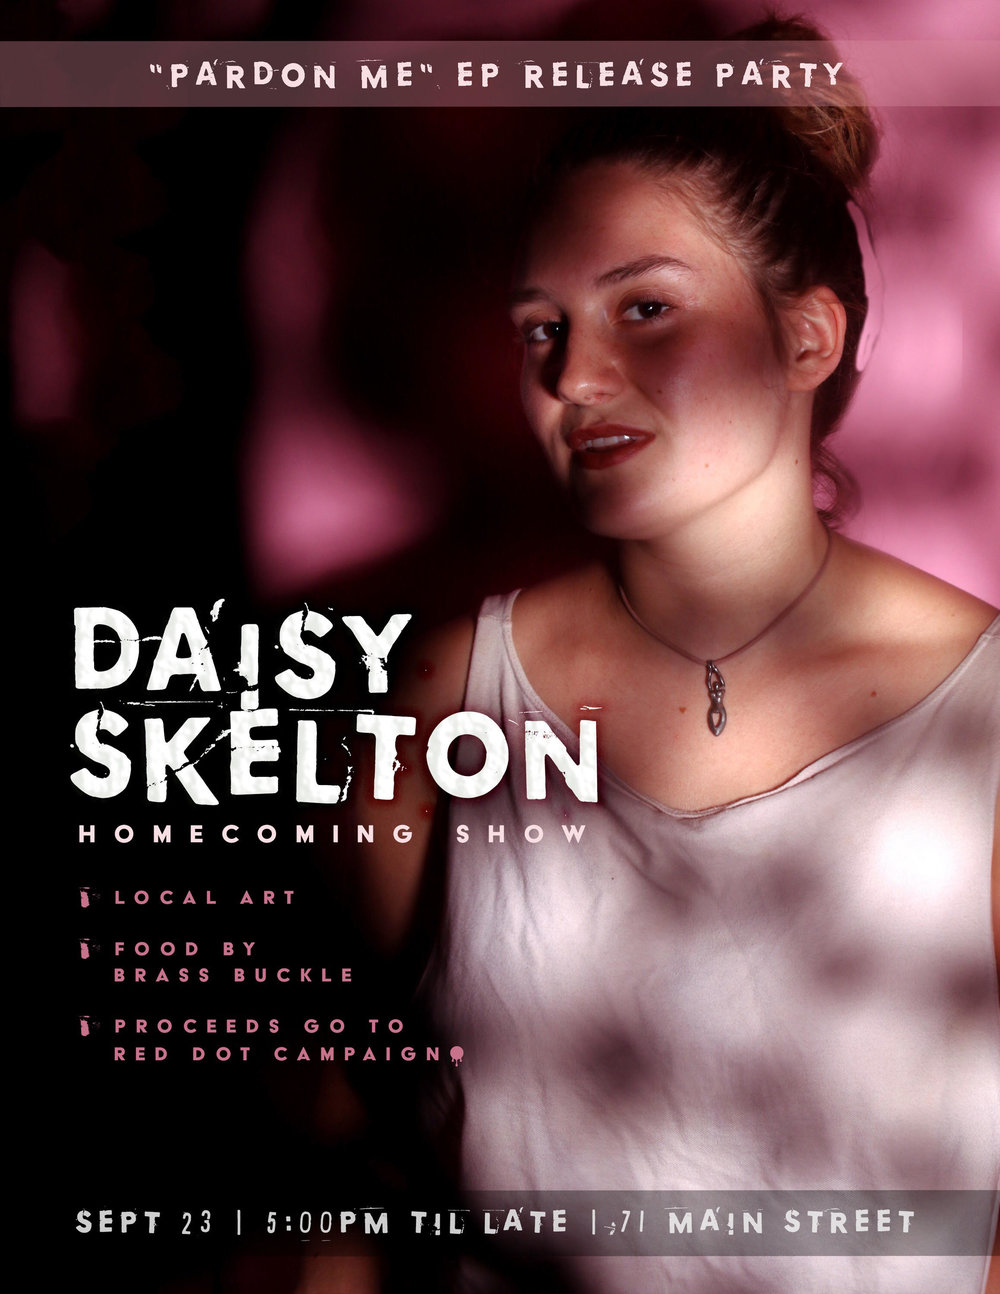 Daisy Skelton Homecoming Show